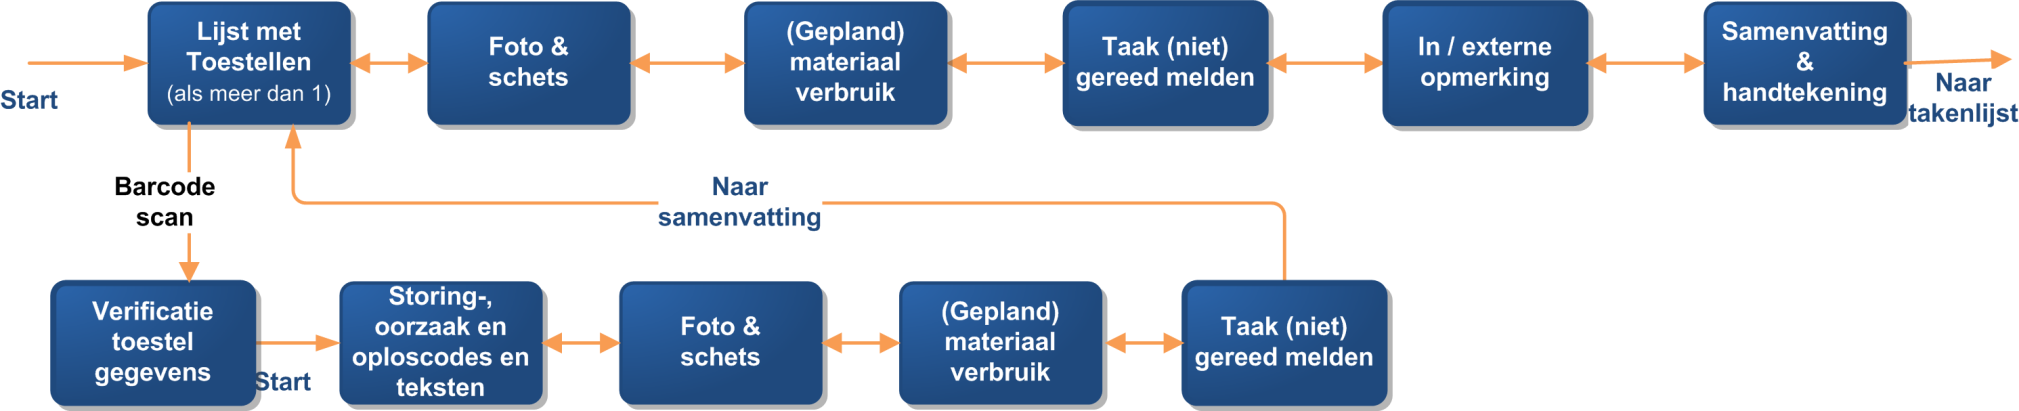 Preventief onderhoud flow